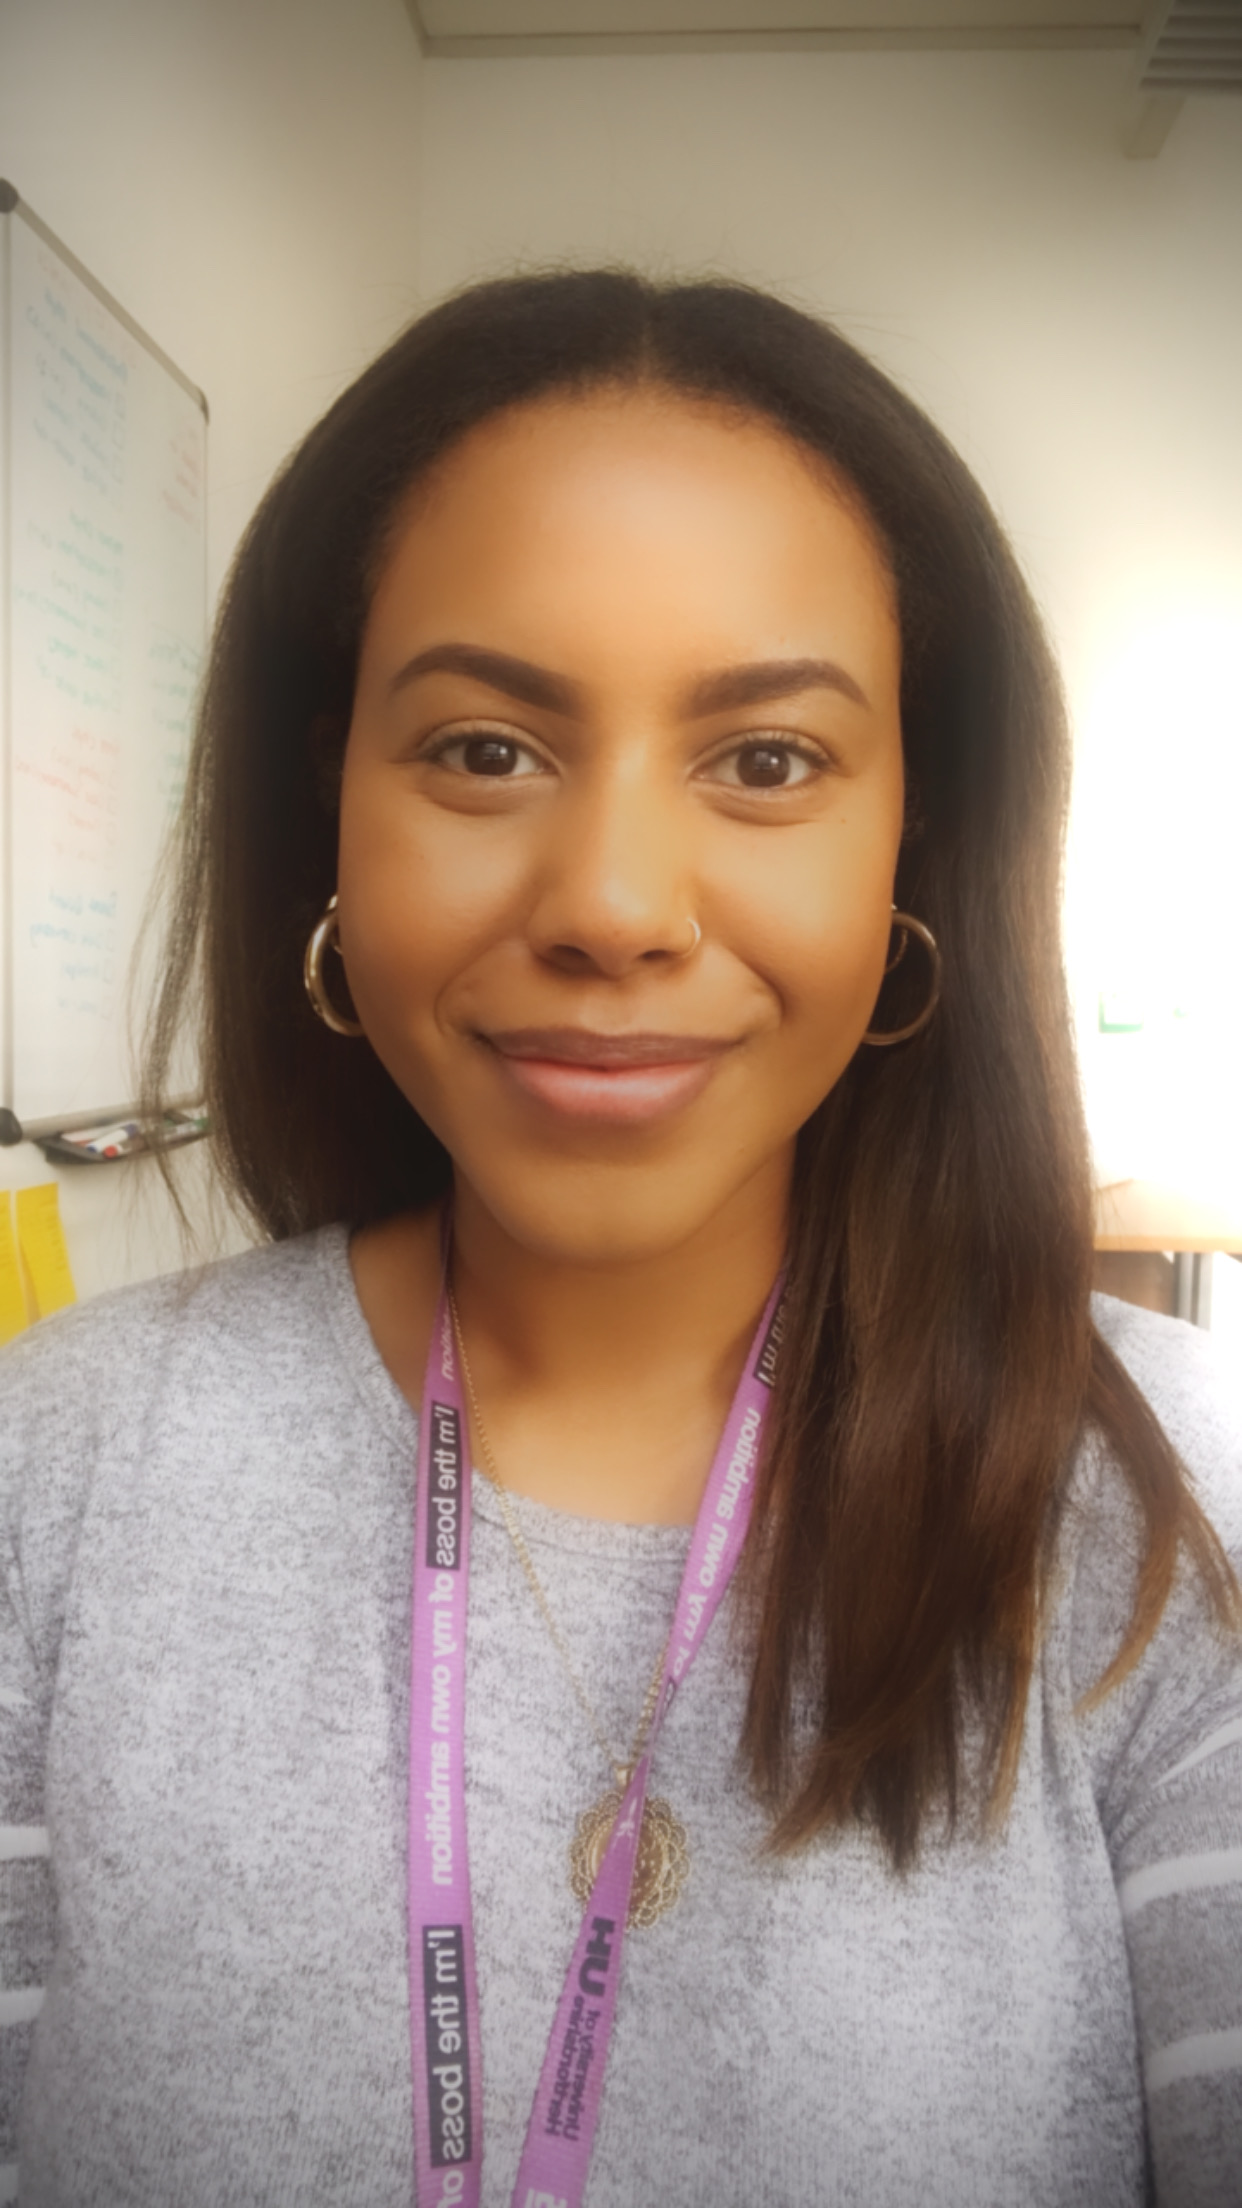 Evie, a young caramel complexion woman smiles while looking directly into the camera. Her dark brown hair rests on her right shoulder. She is wearing gold jewellery (earrings, nose ring and necklace). She is also wearing a purple University of Herefordshire a lanyard. The background is blurred, with a whiteboard to her left.